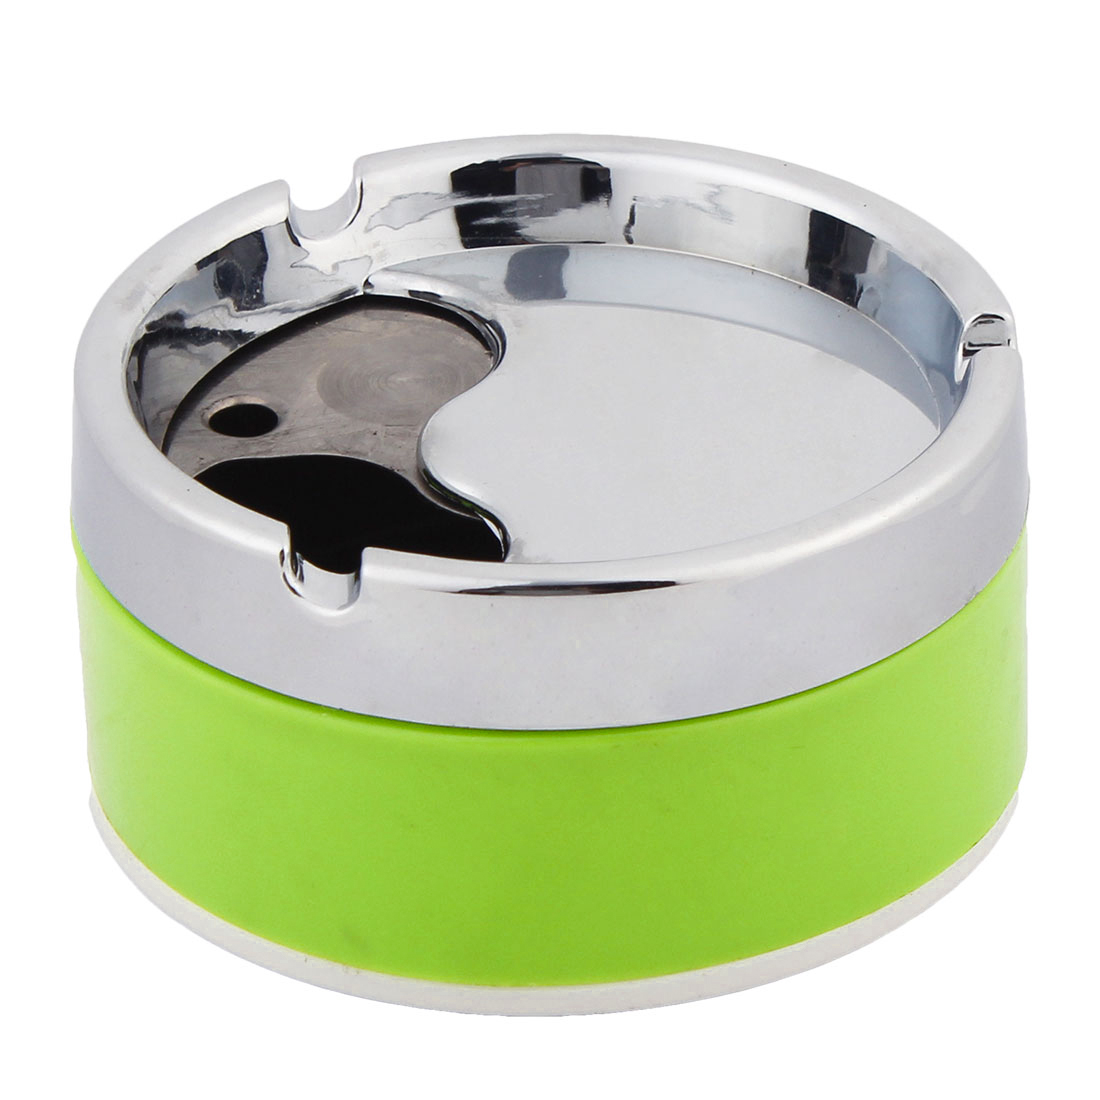 Household Cylinder Shape Closeable Ashtray Cigarette Holder Silver Tone Green